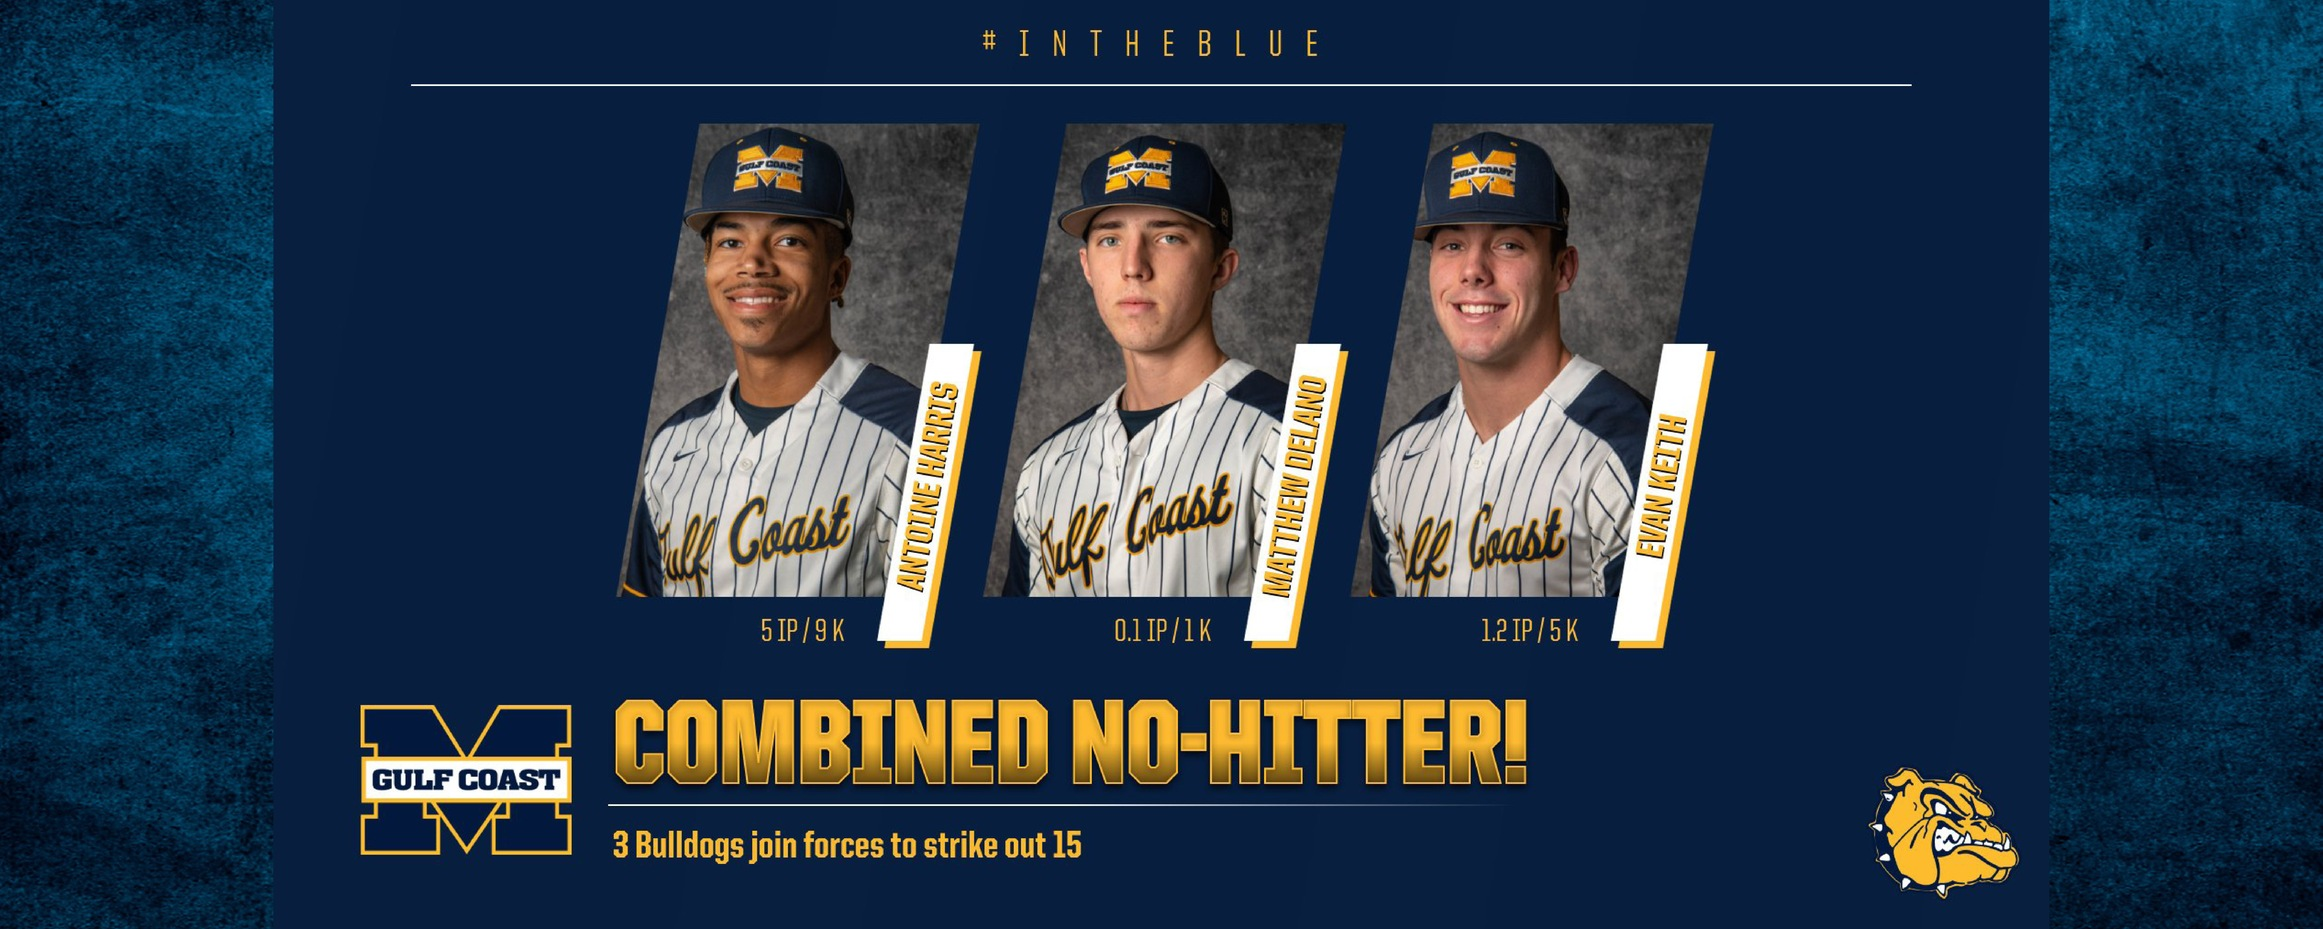 MGCCC trio combine for no-hitter